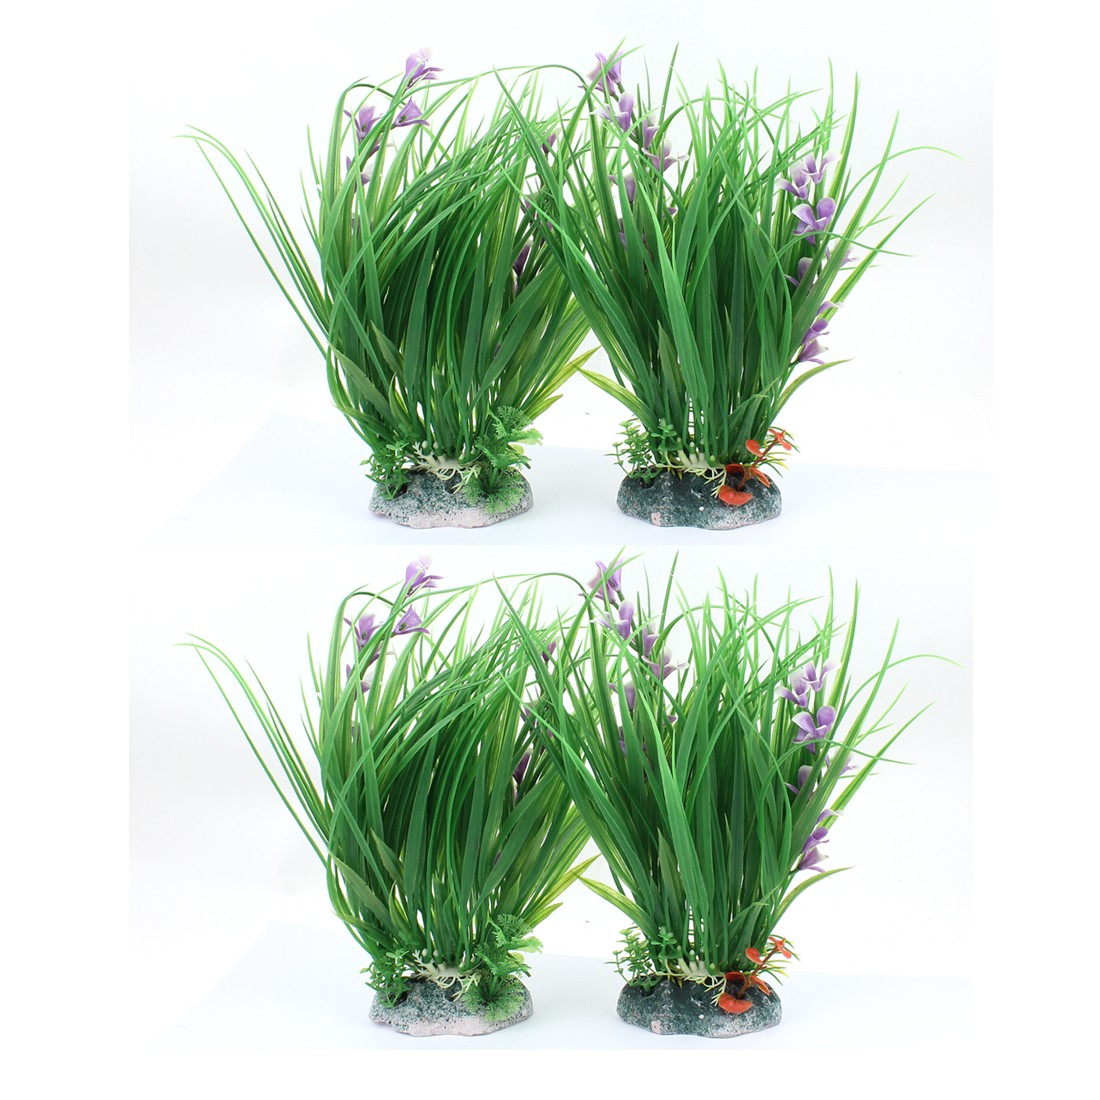 Aquarium Fish Tank Simulation Artificial Floral Plant Ornament 4Pcs Green Purple